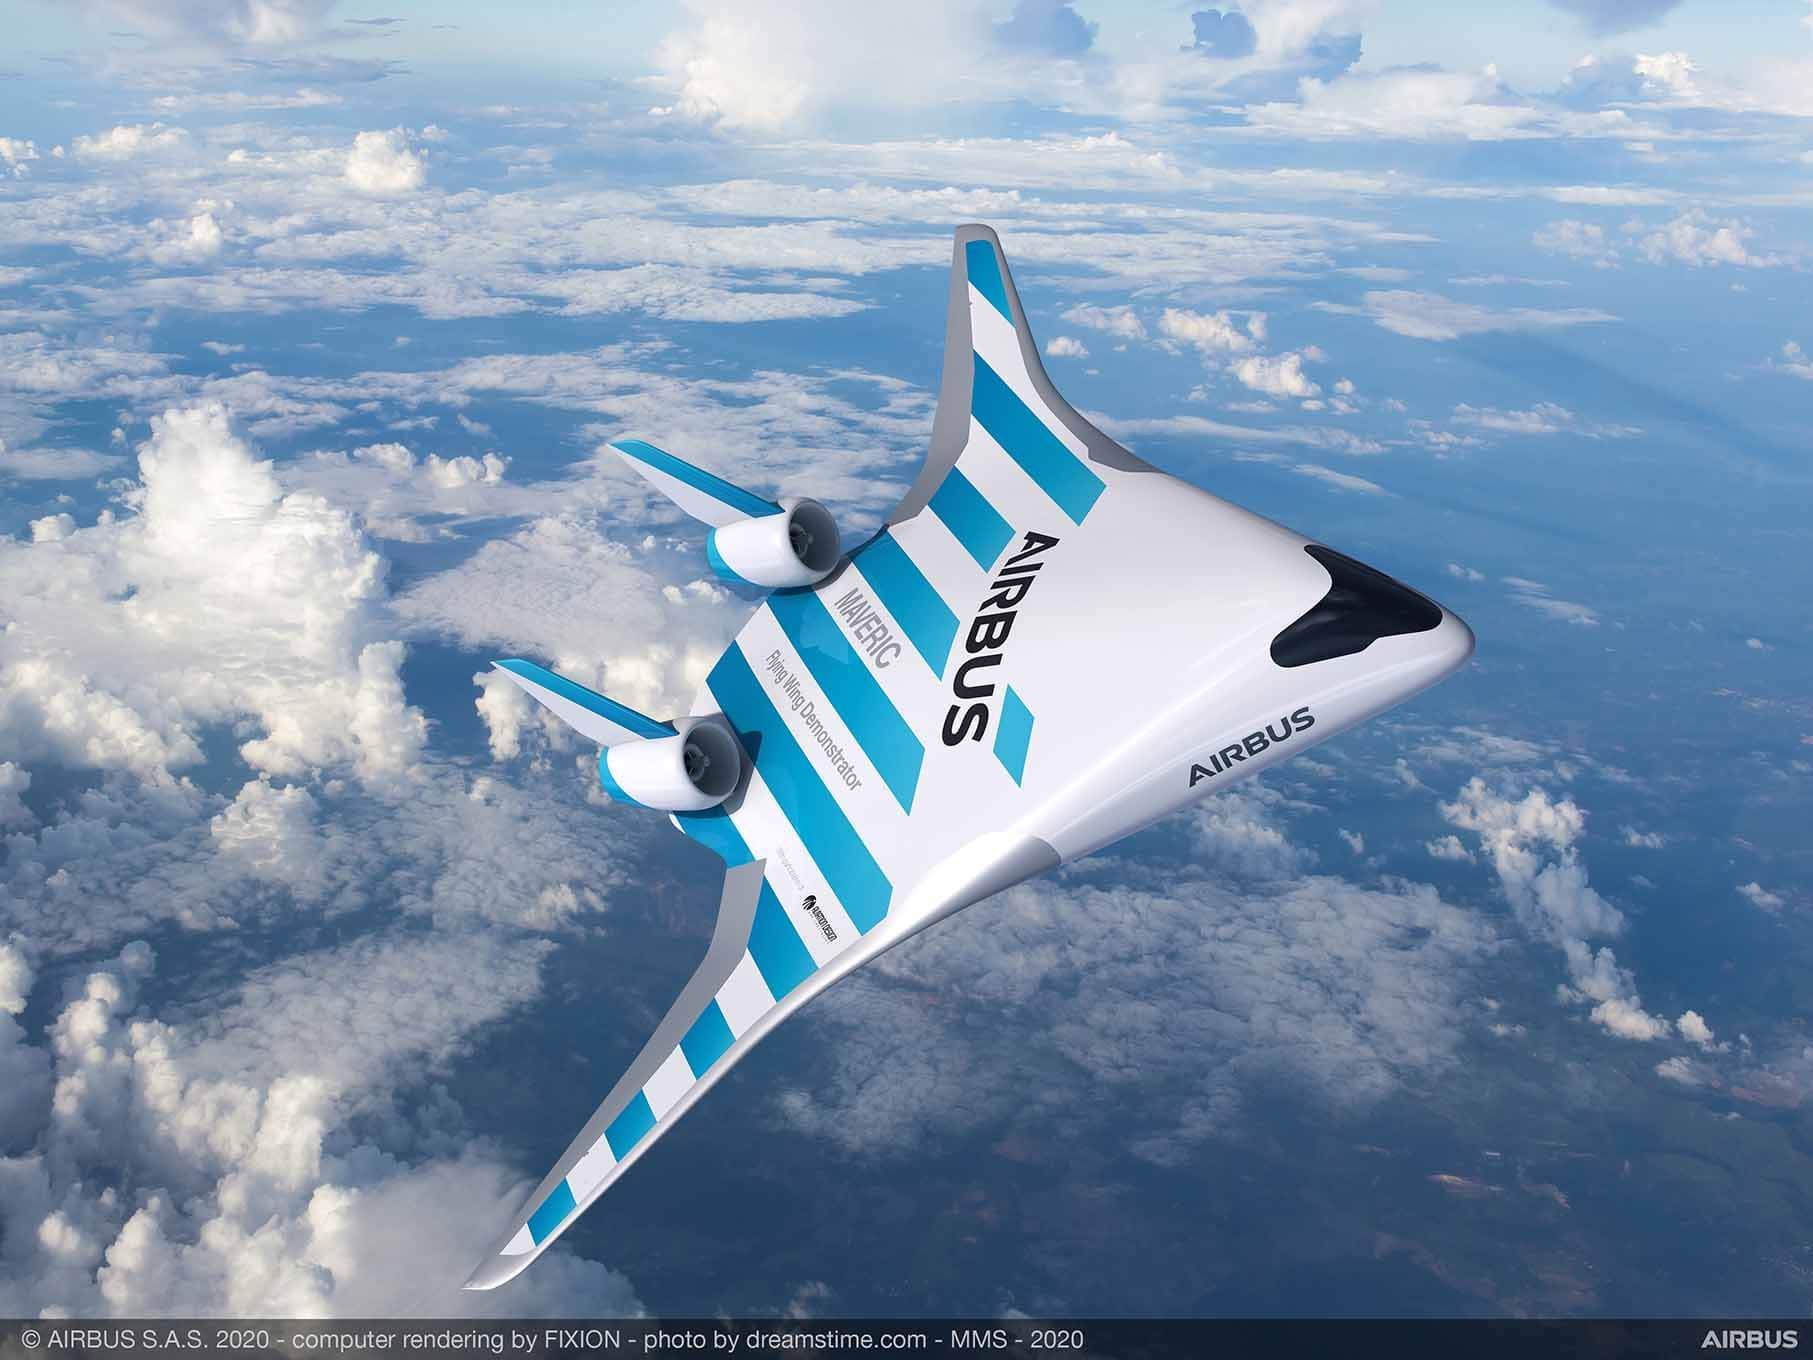 Airbus blended wing aircraft